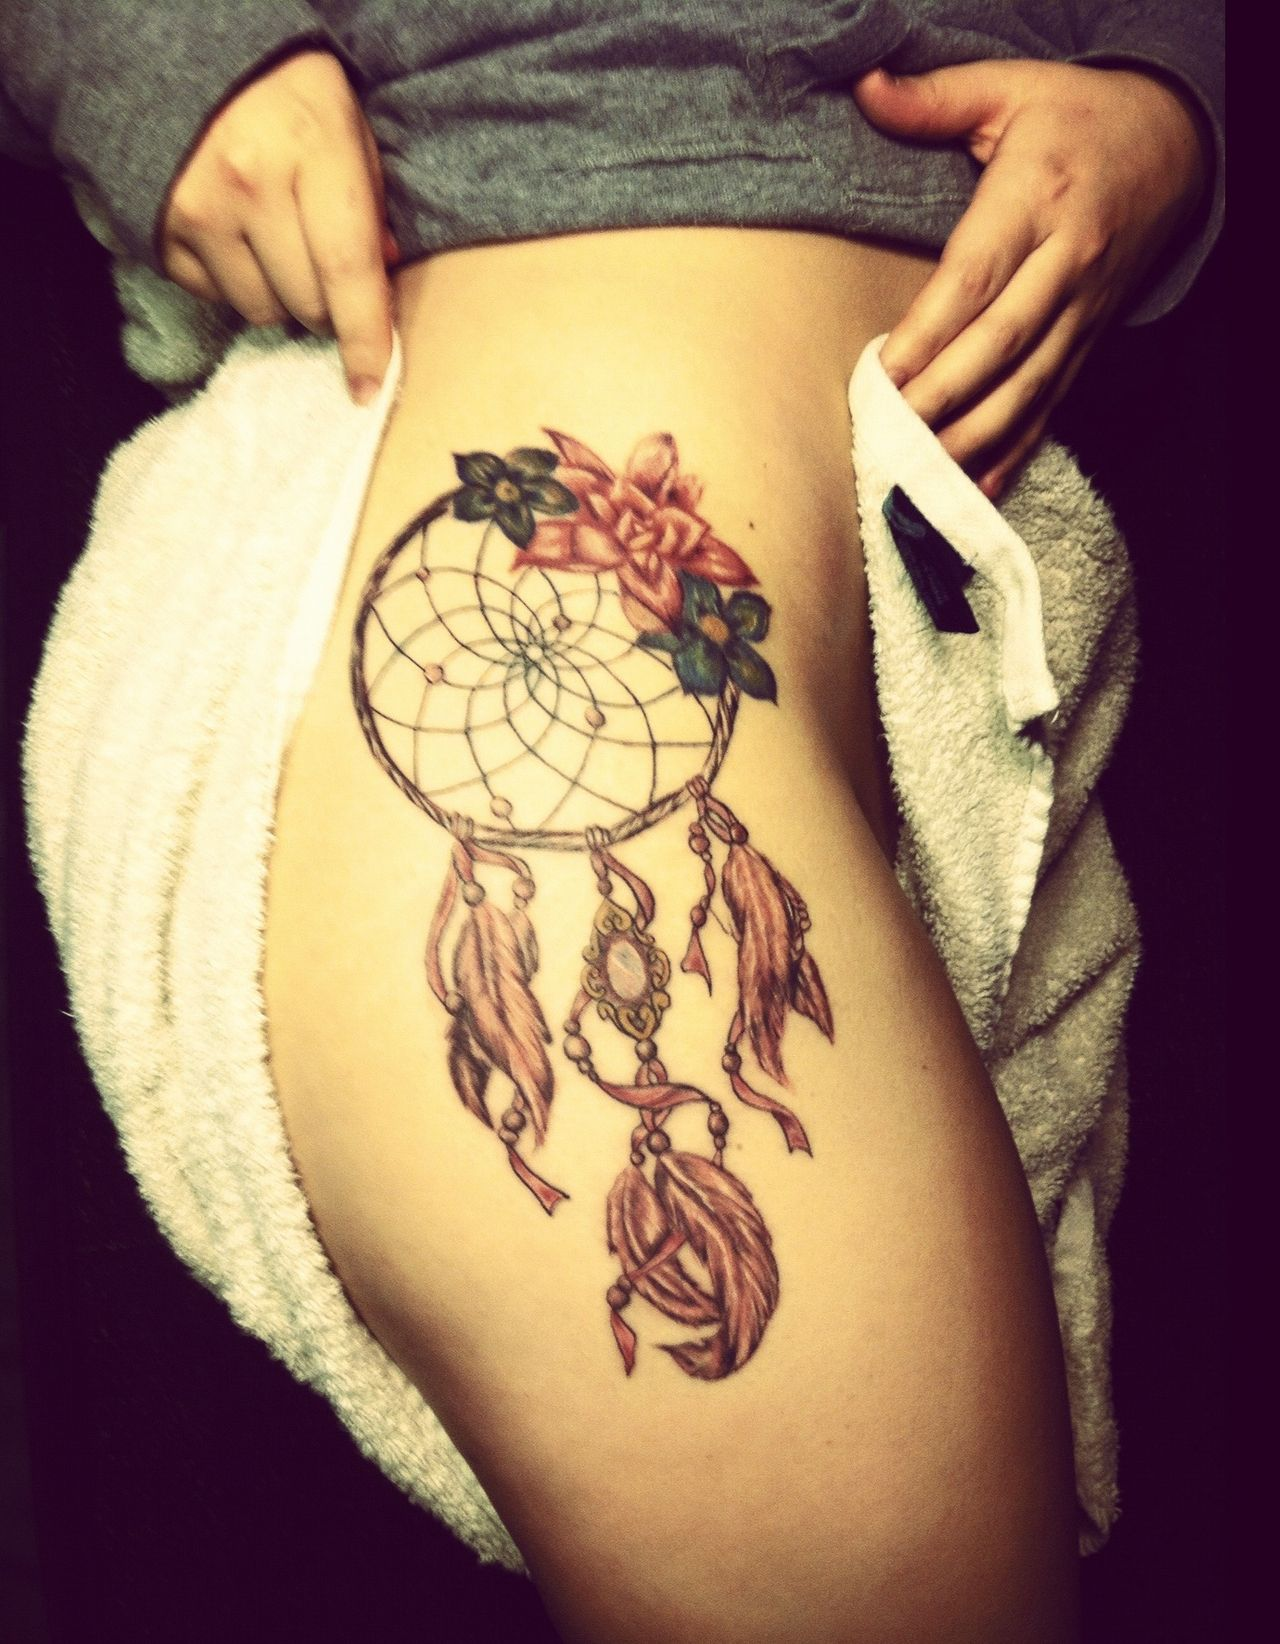 Dream Catcher Tattoo On Thigh Magnificent I Love This Dream Catcher Tattoo I Have One On My Shoulder Think I Inspiration